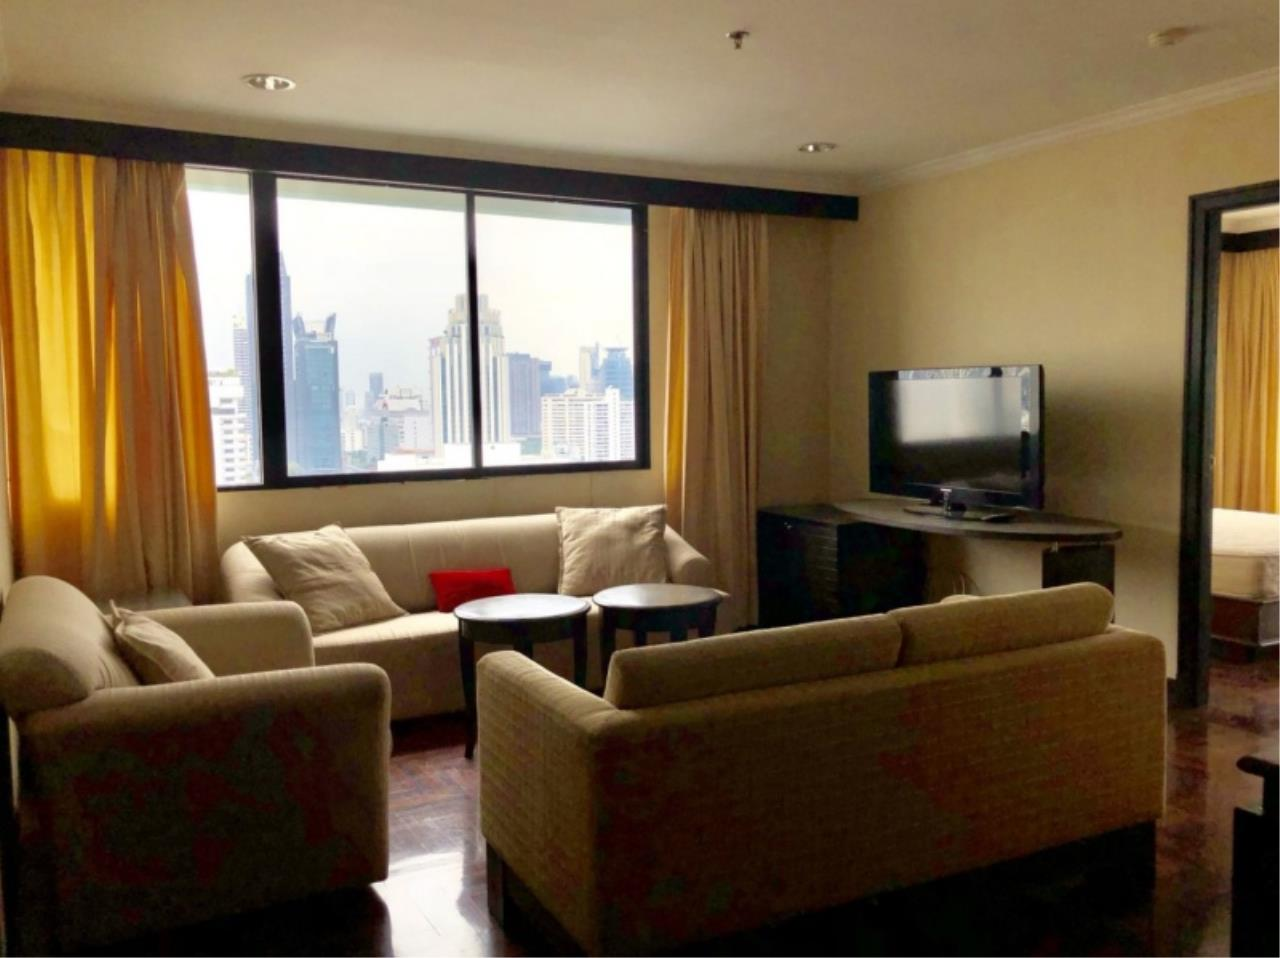 Century21 Skylux Agency's Lake Green / Condo For Rent / 2 Bedroom / 135.04 SQM / BTS Nana / Bangkok 2